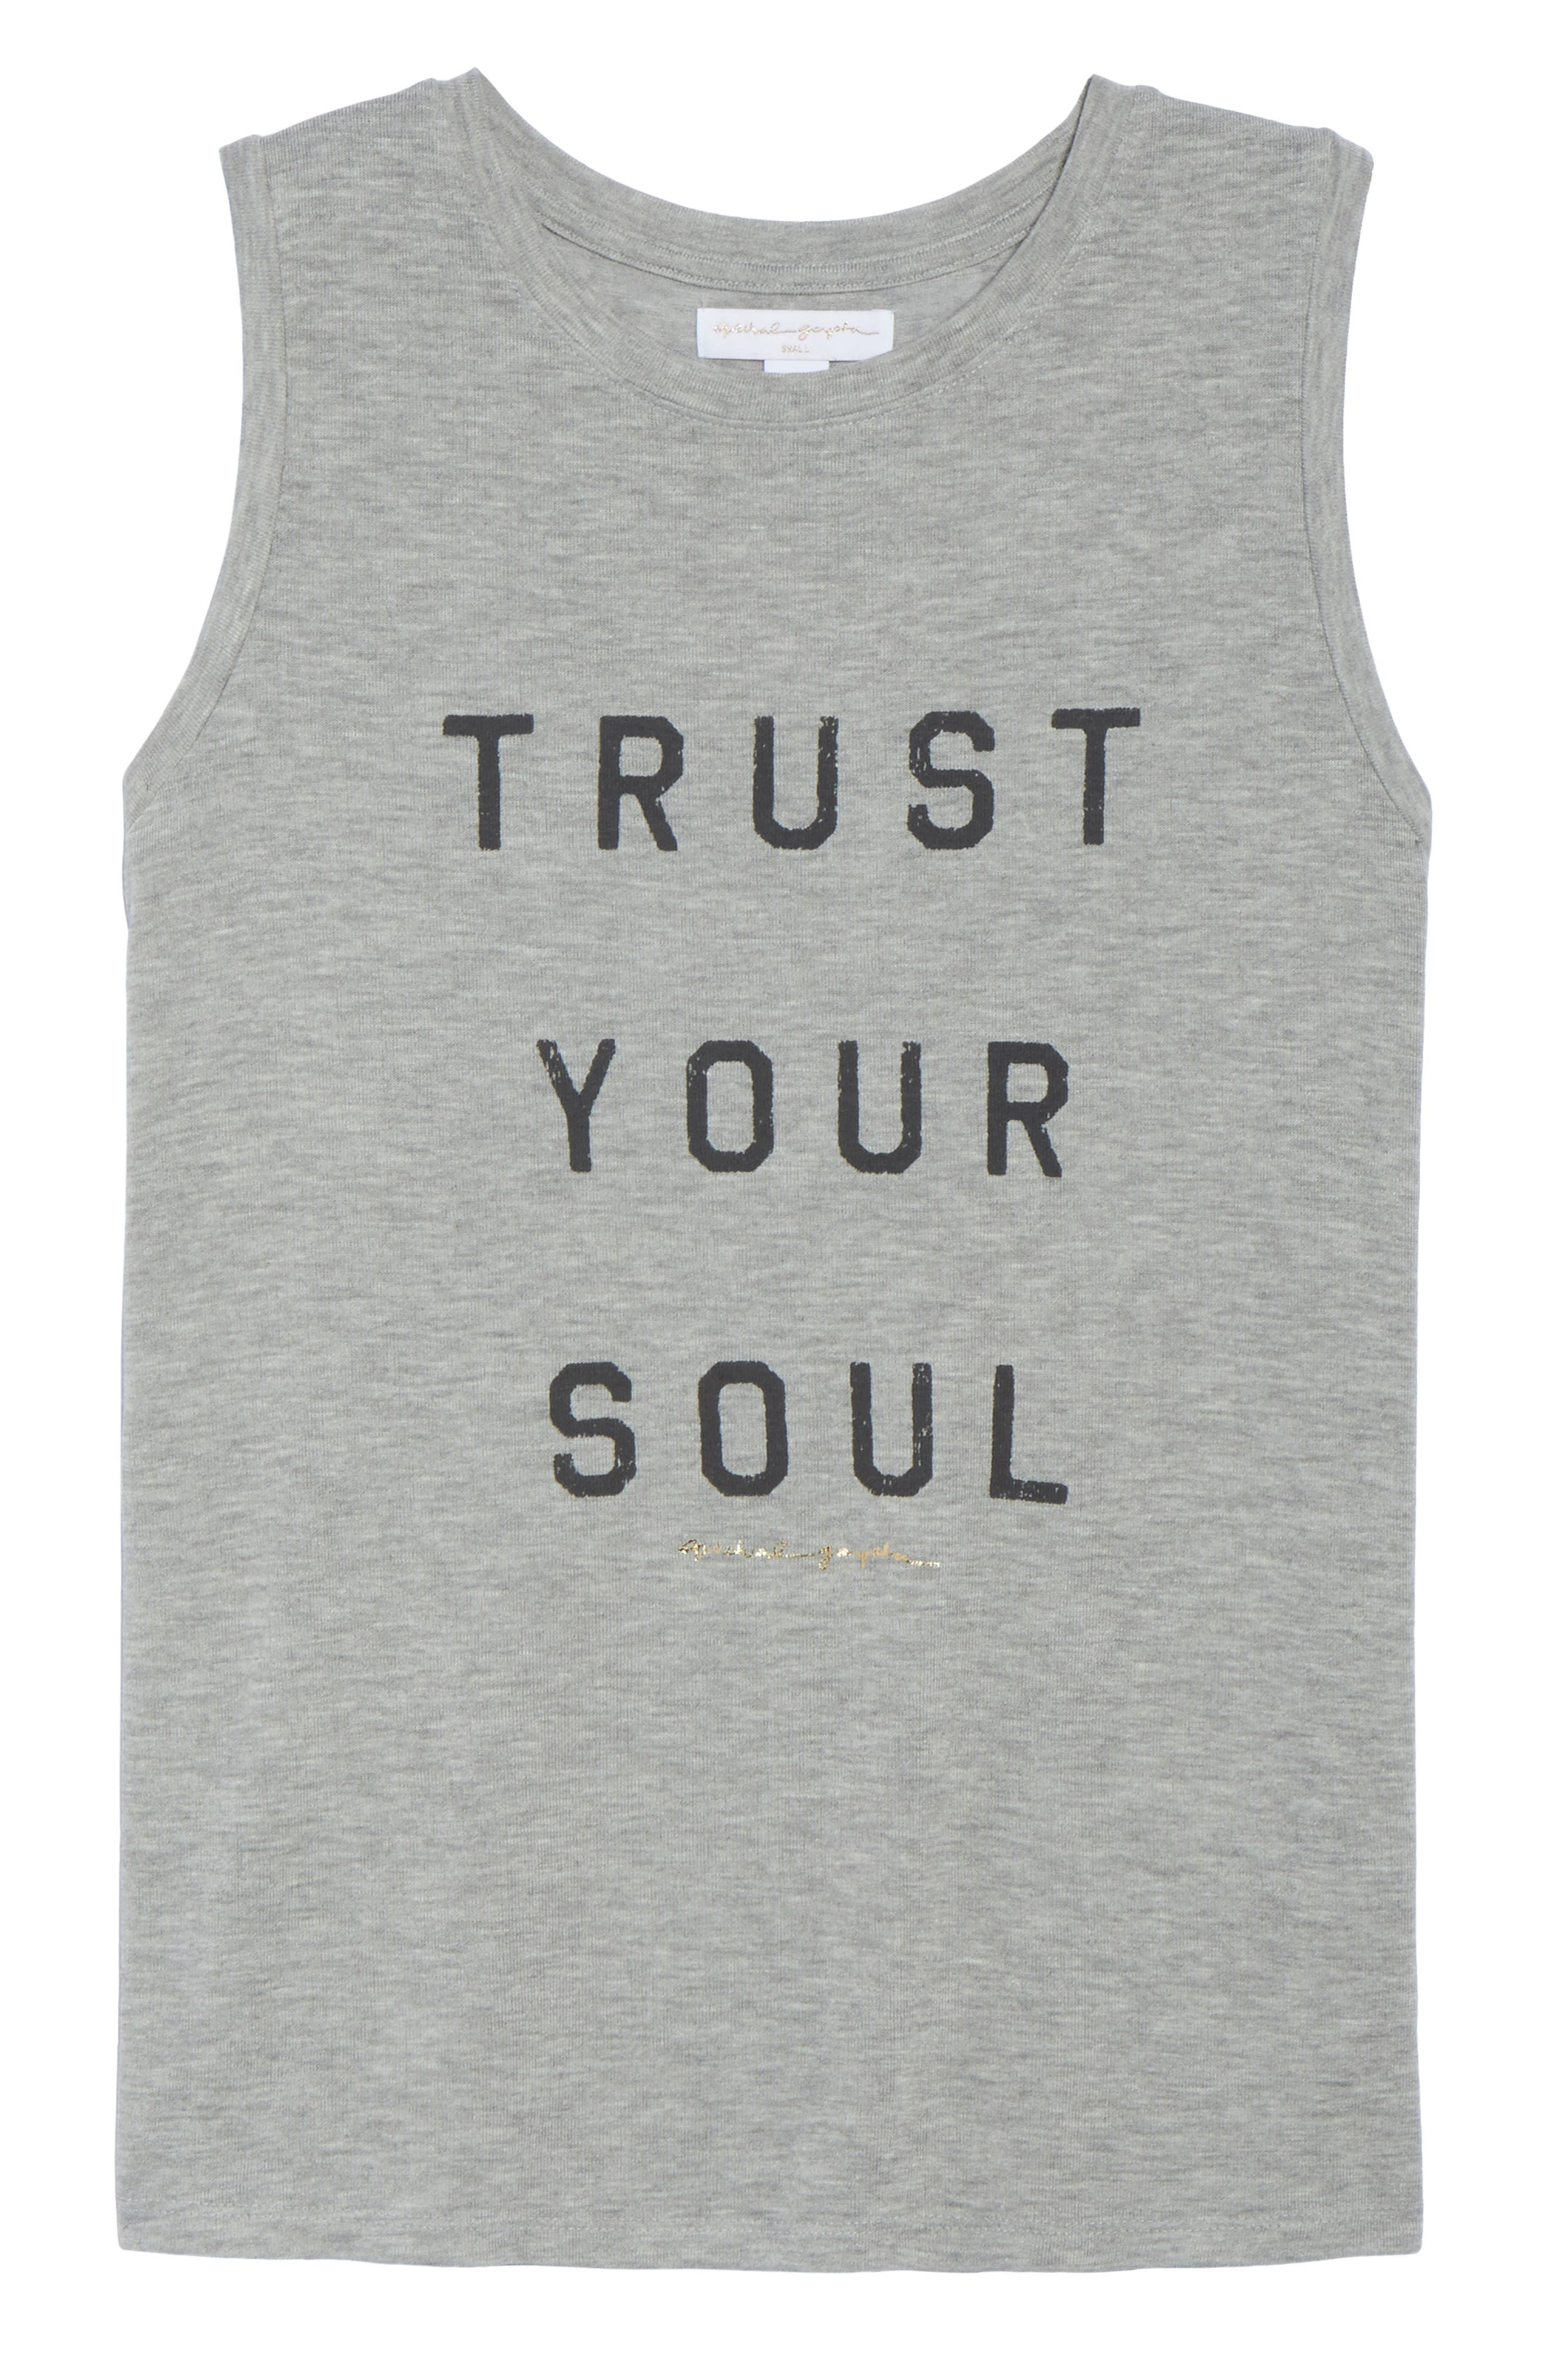 Trust Your Soul Muscle Tee,                             Alternate thumbnail 7, color,                             Heather Grey